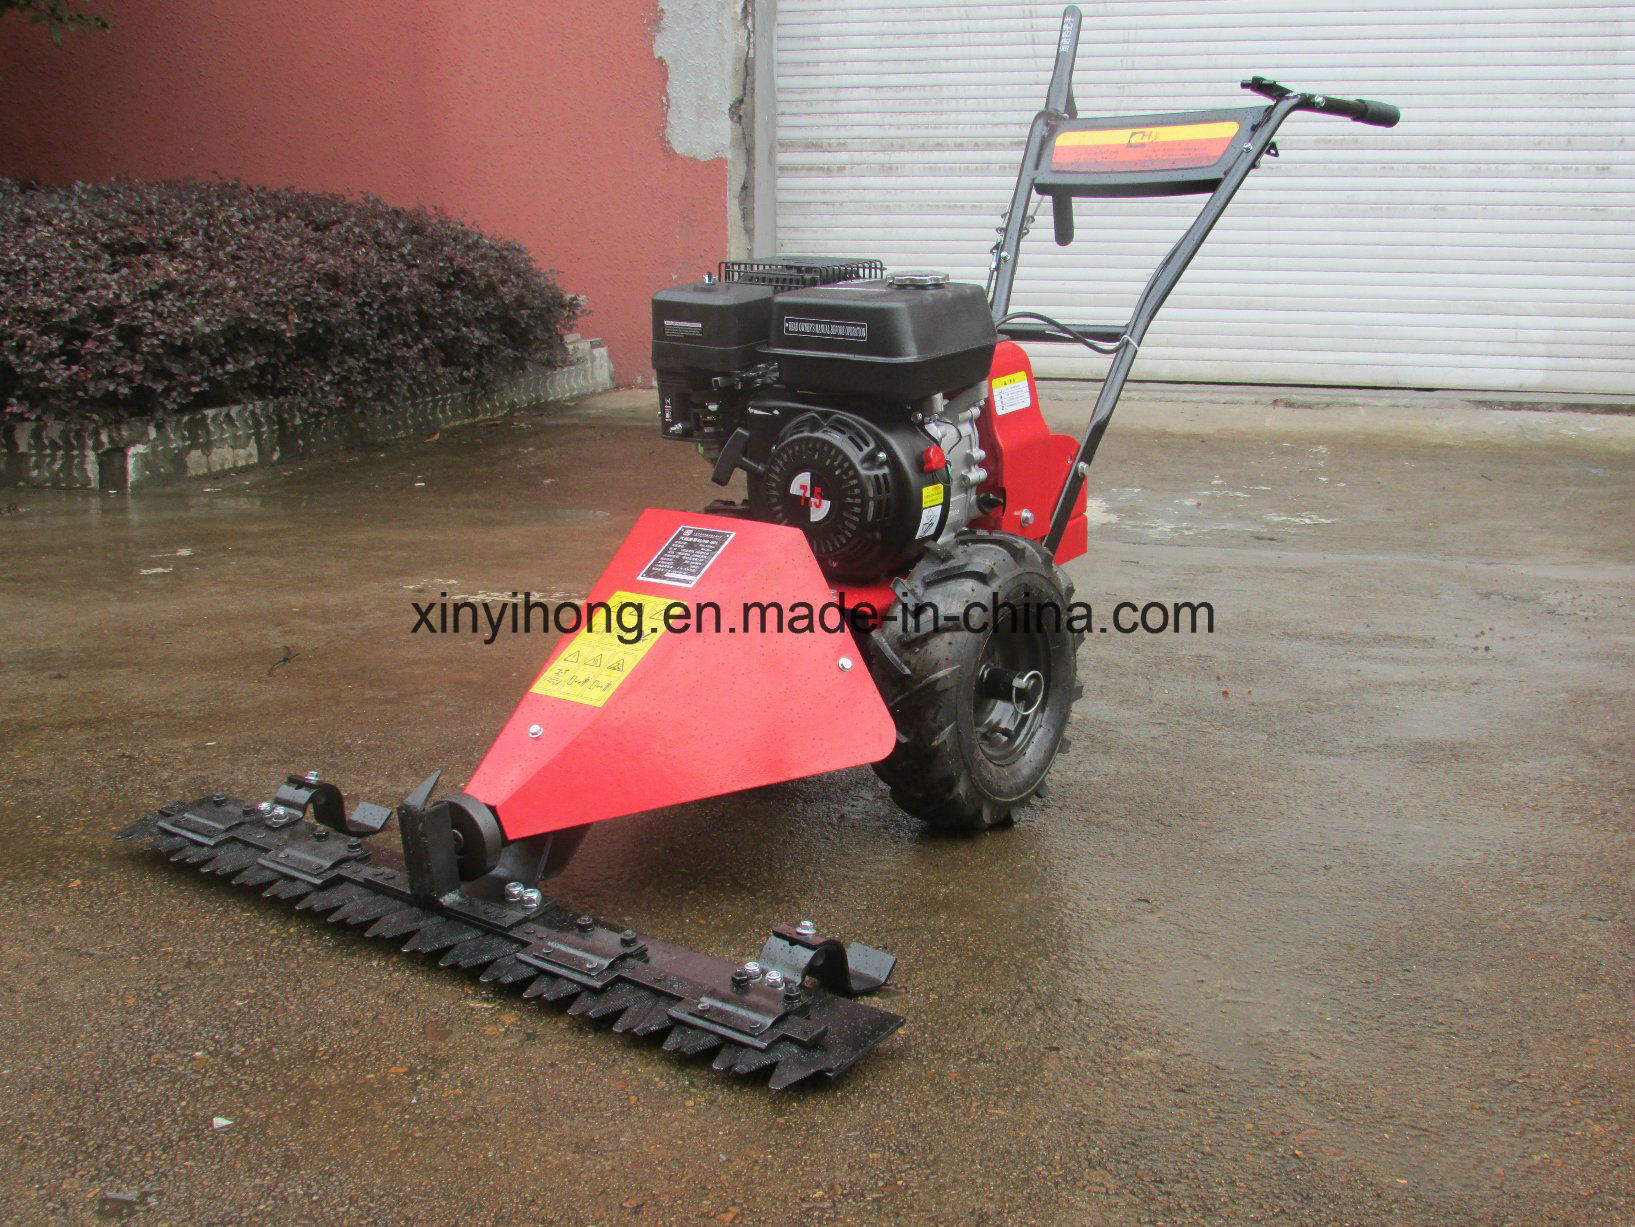 Scythe Mower with 1200mm Grass Cutter